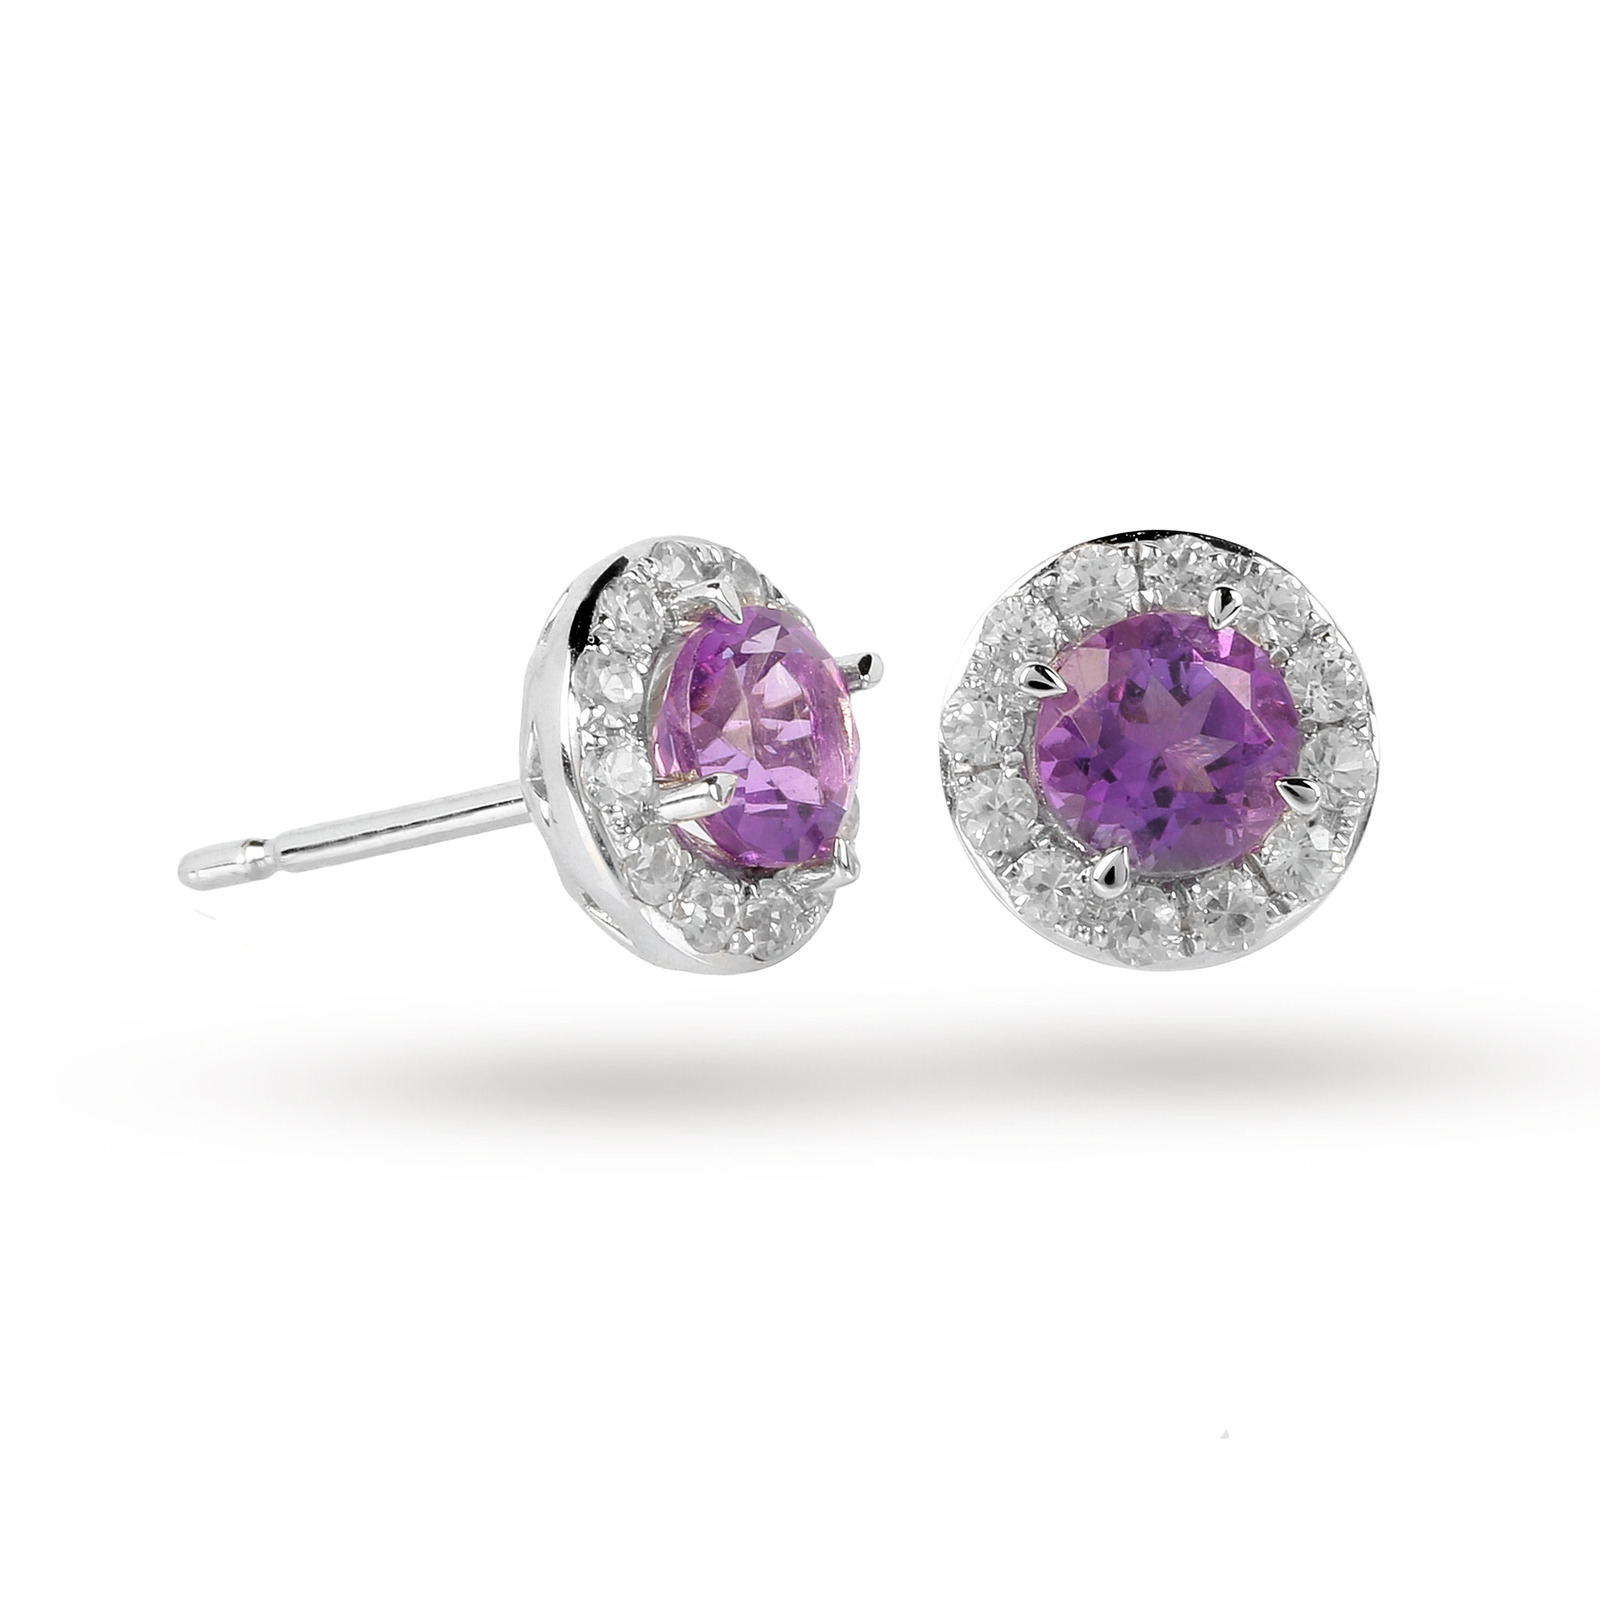 9ct White Gold Amethyst And Diamond Halo Stud Earrings 350 00 Bullring Grand Central